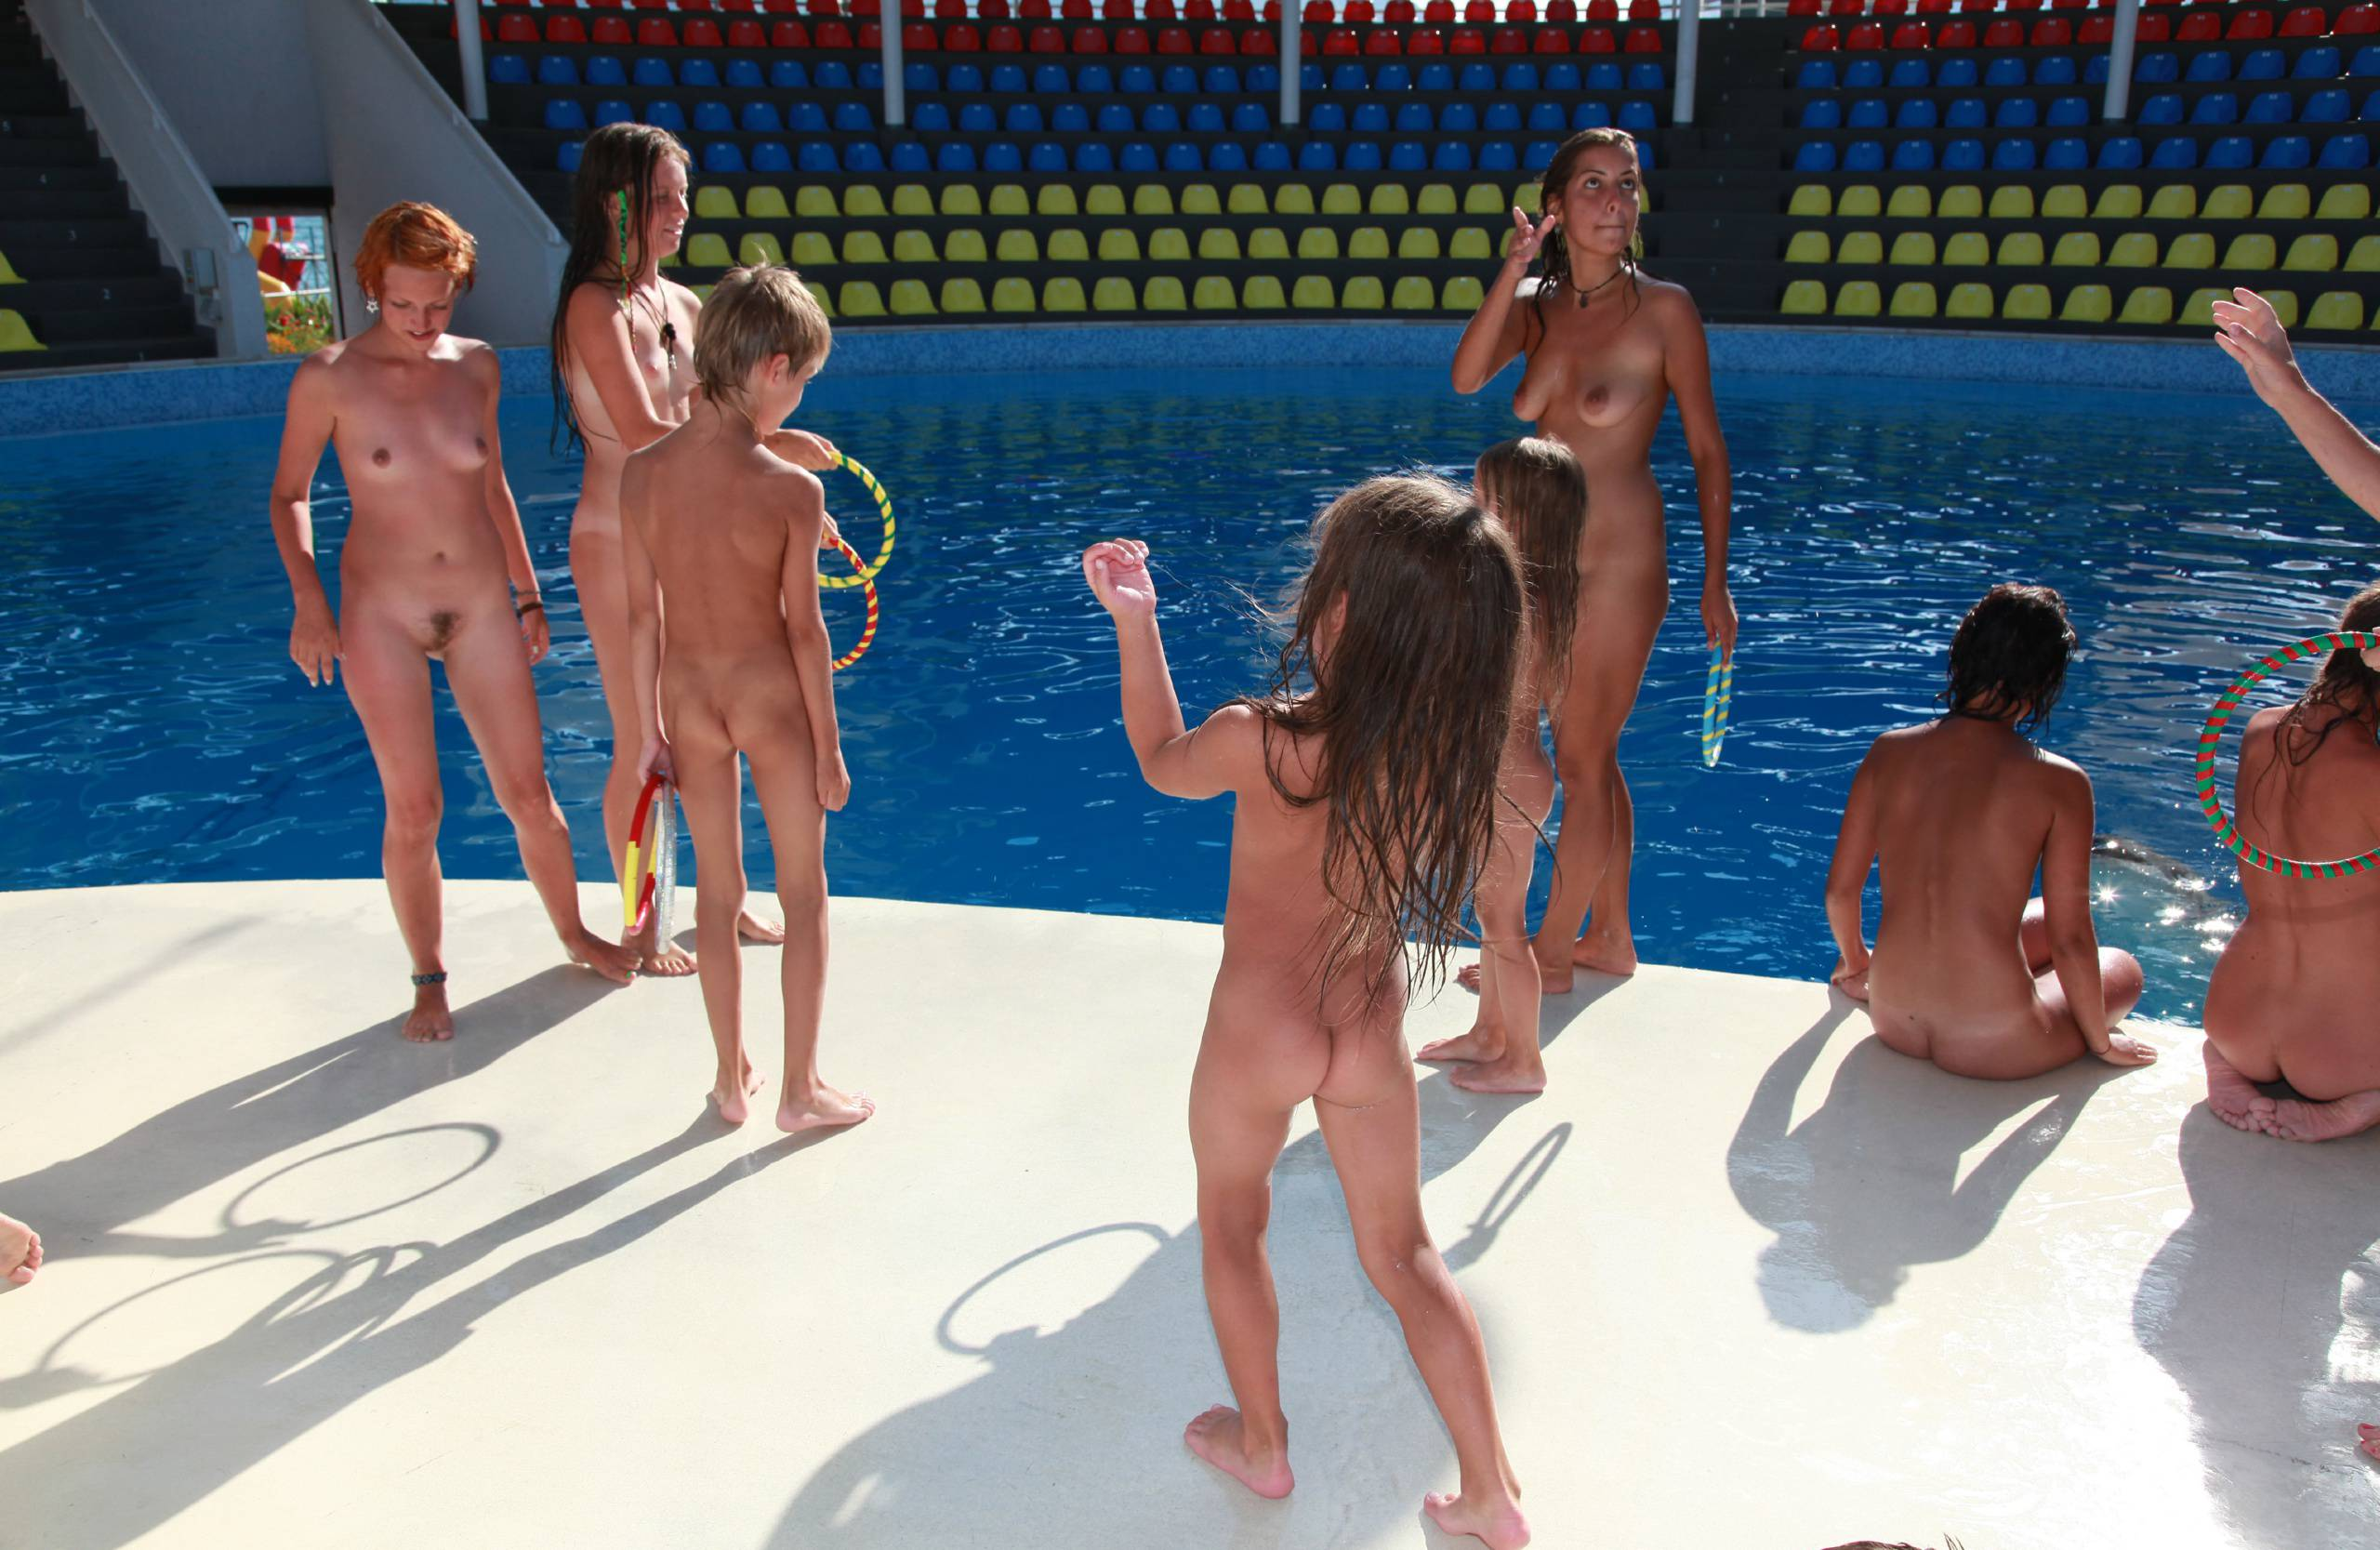 Pure Nudism Pics-Swimming and Dolphins - 2